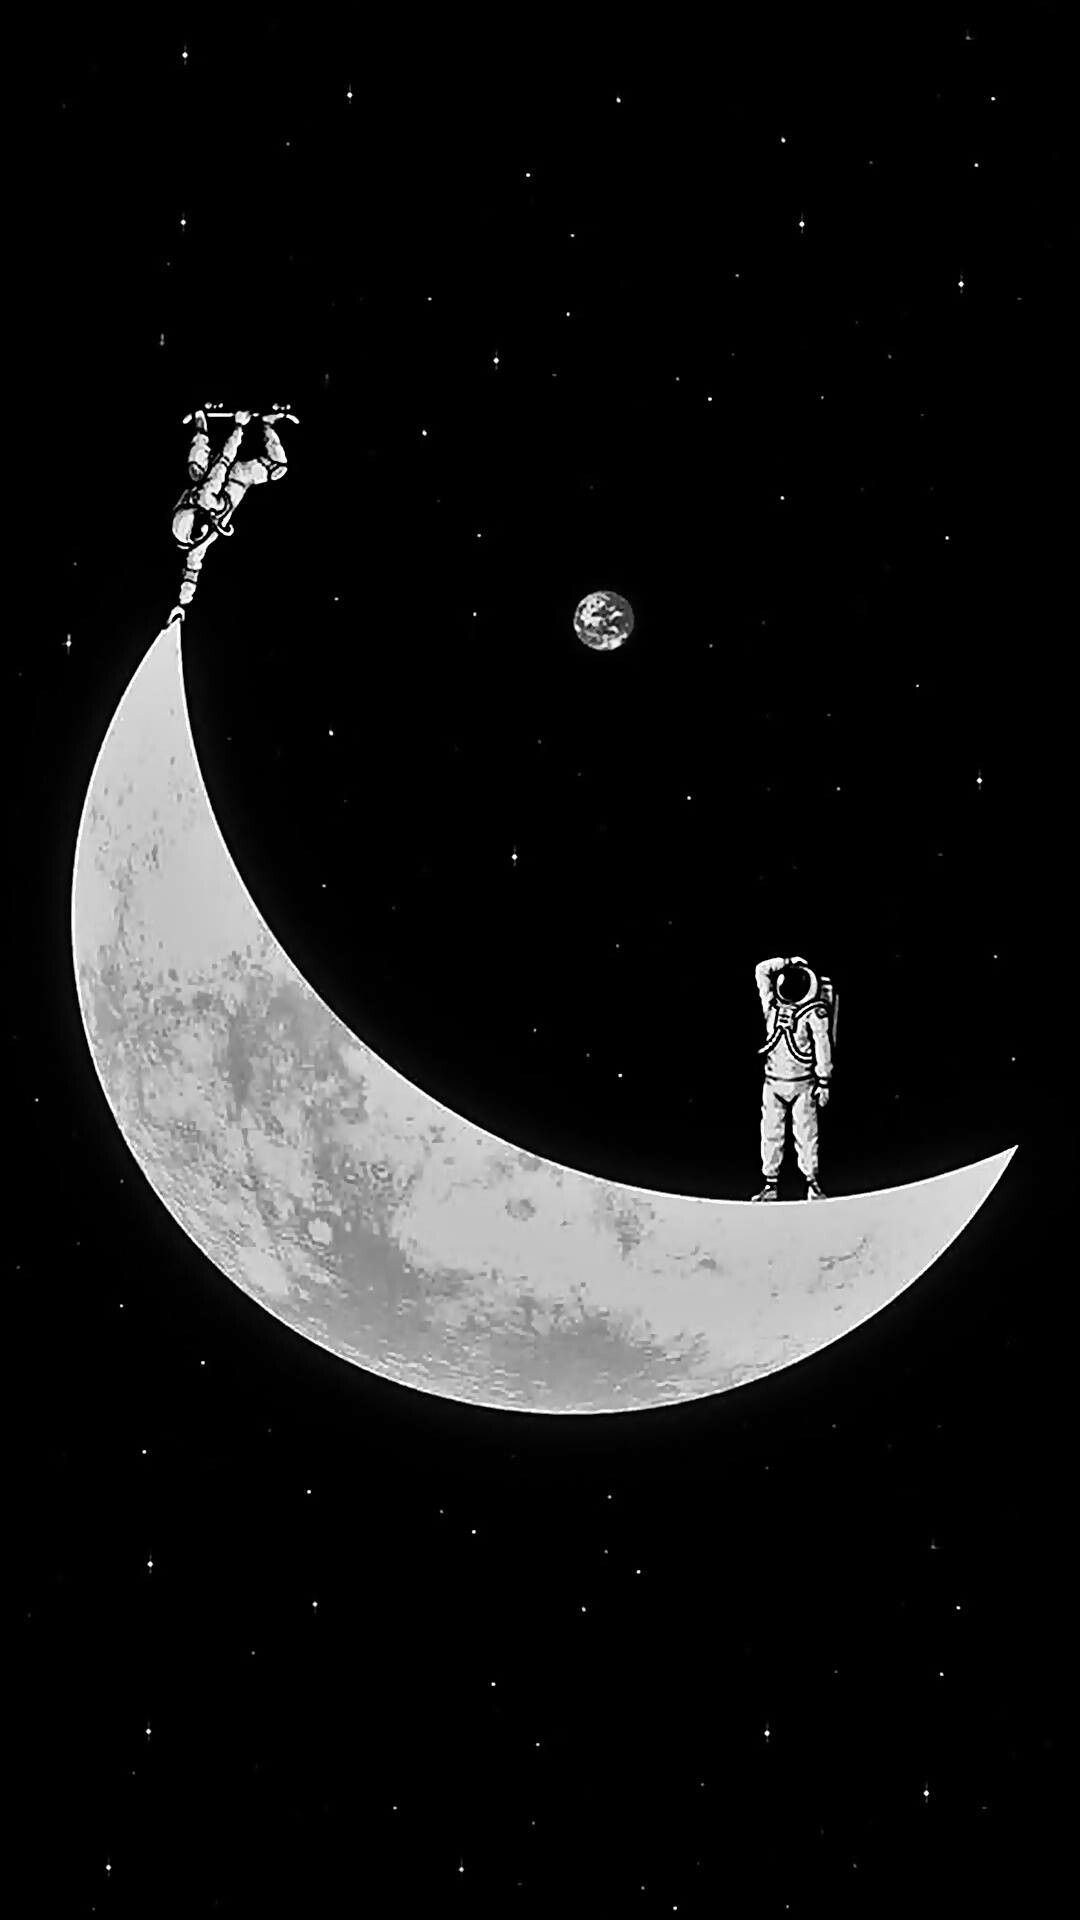 Free download space astronaut skate moon Wallpapers space Android wallpapers [1080x1920] for your Desktop, Mobile & Tablet